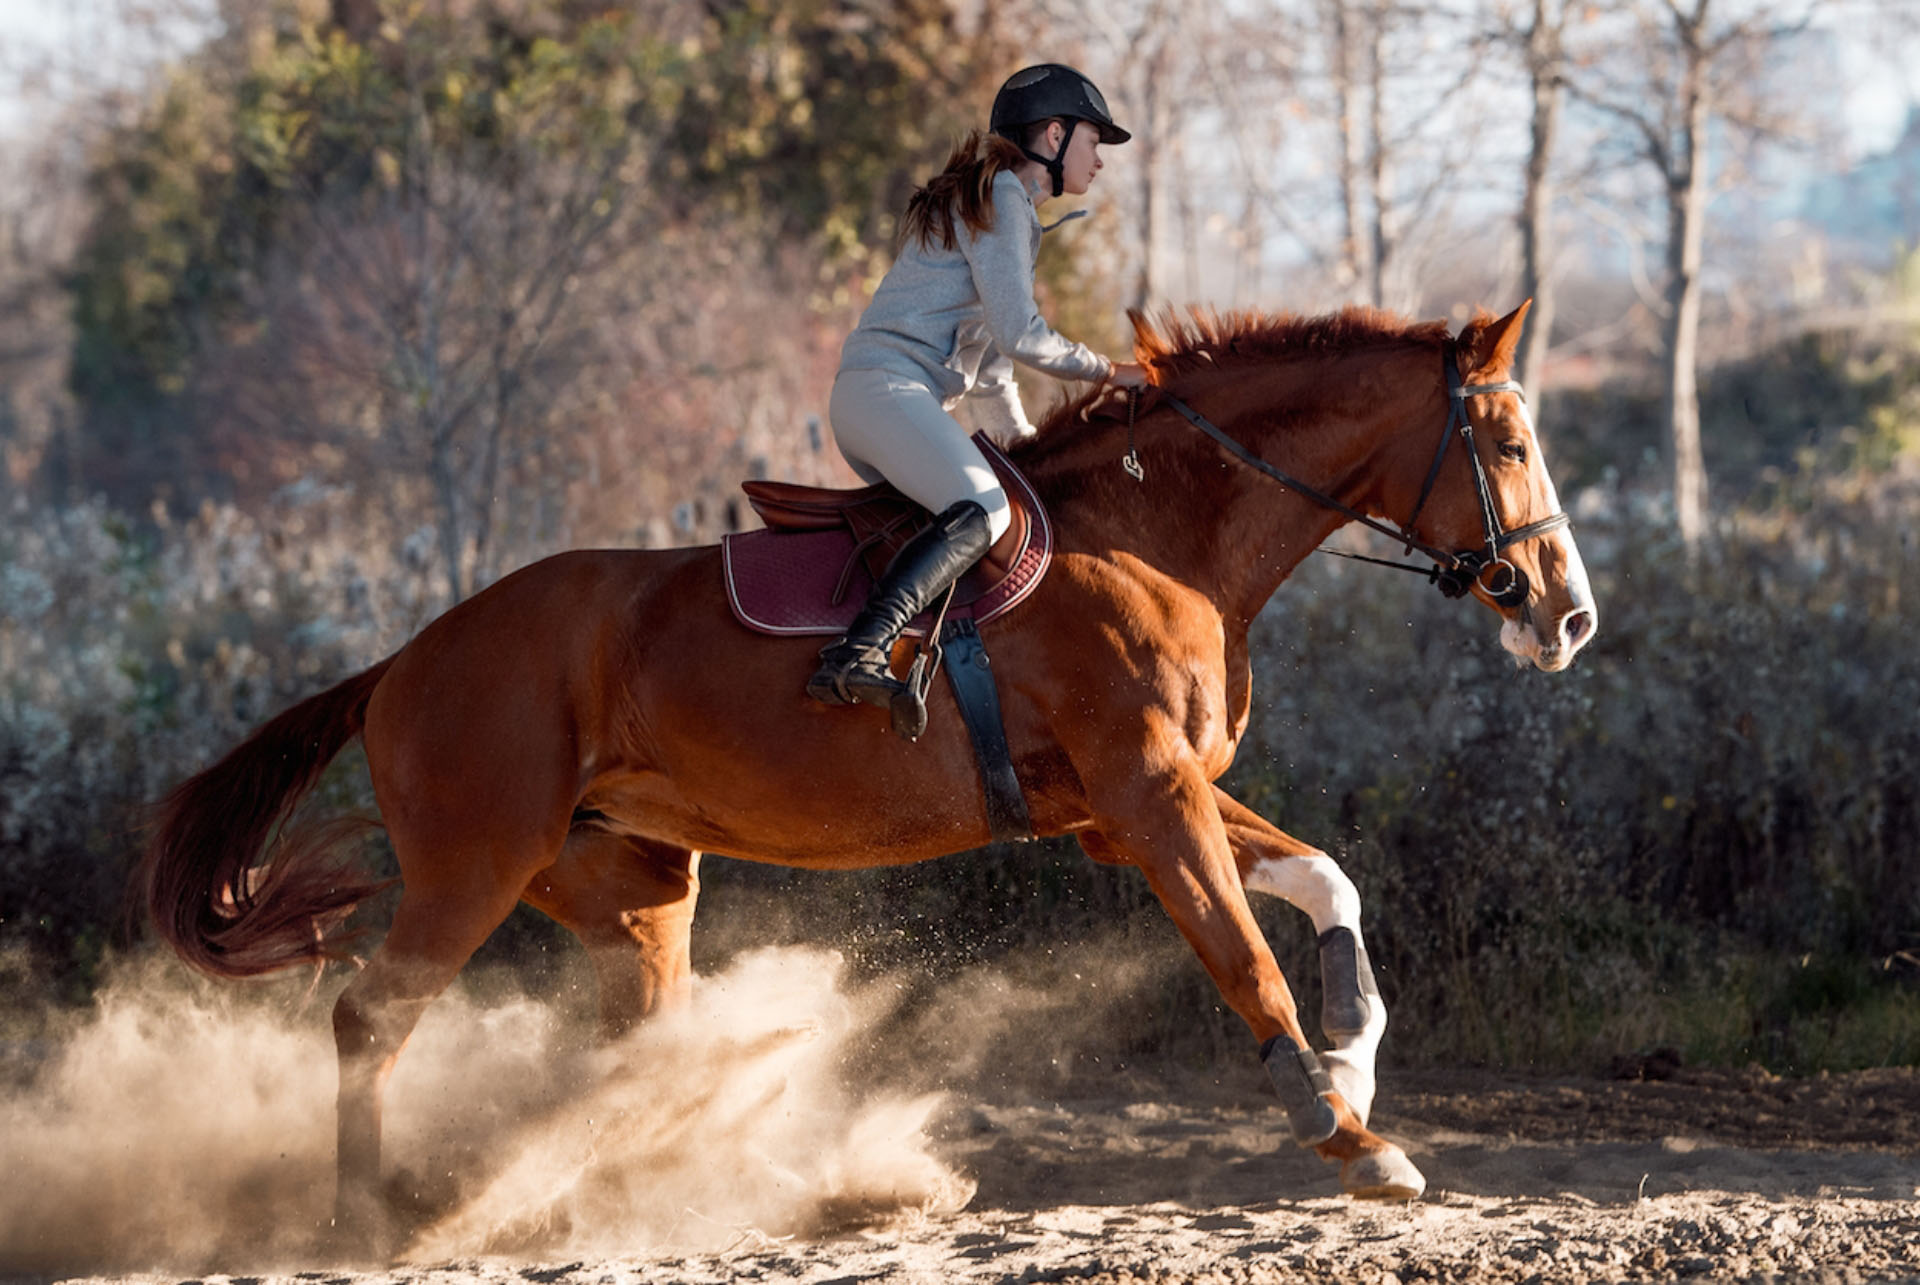 Horse exercise